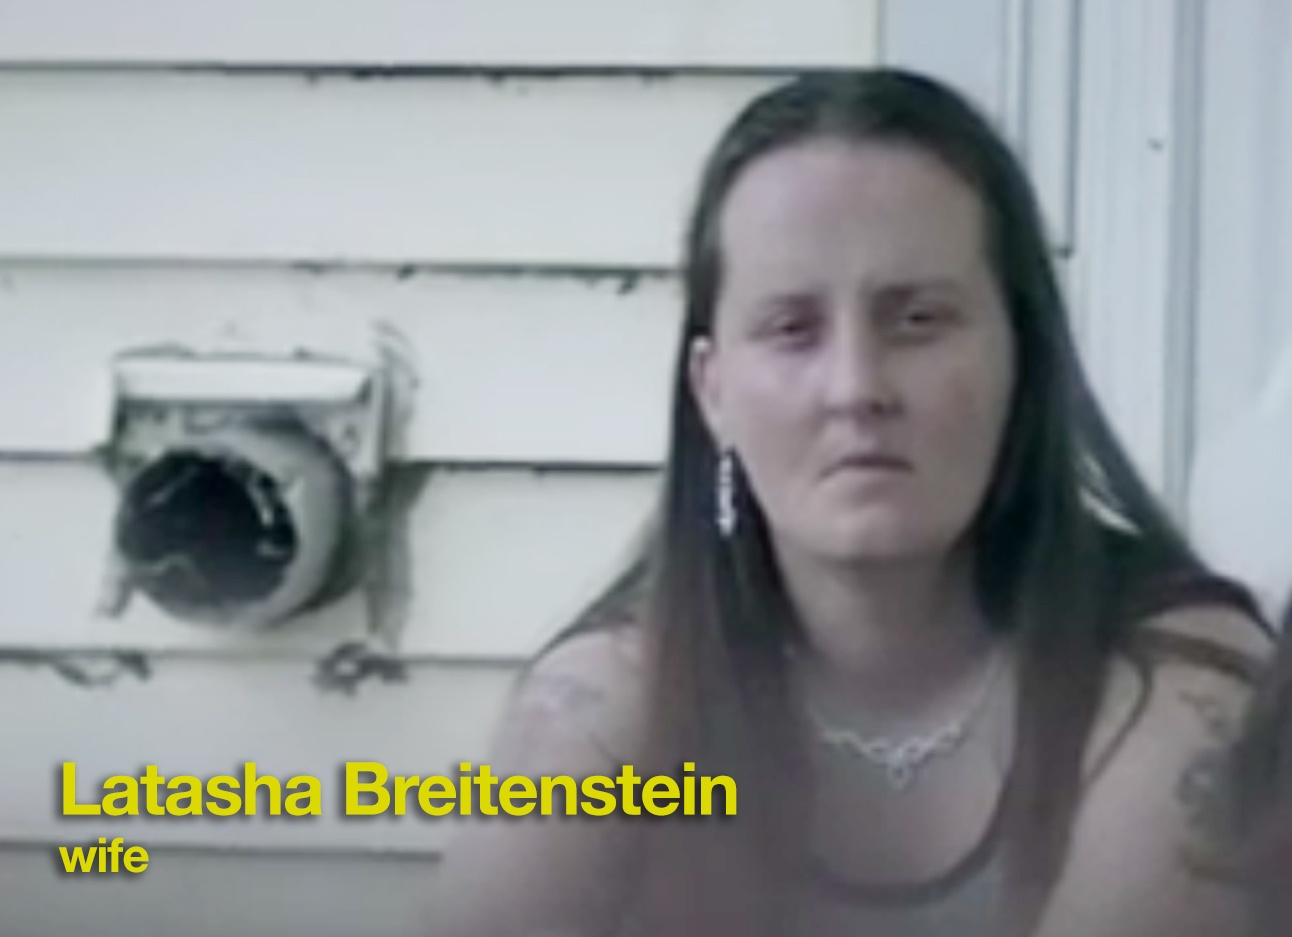 Latasha Breitenstein - 1904 North Main Street - Dayton, Ohio - 937-540-5871